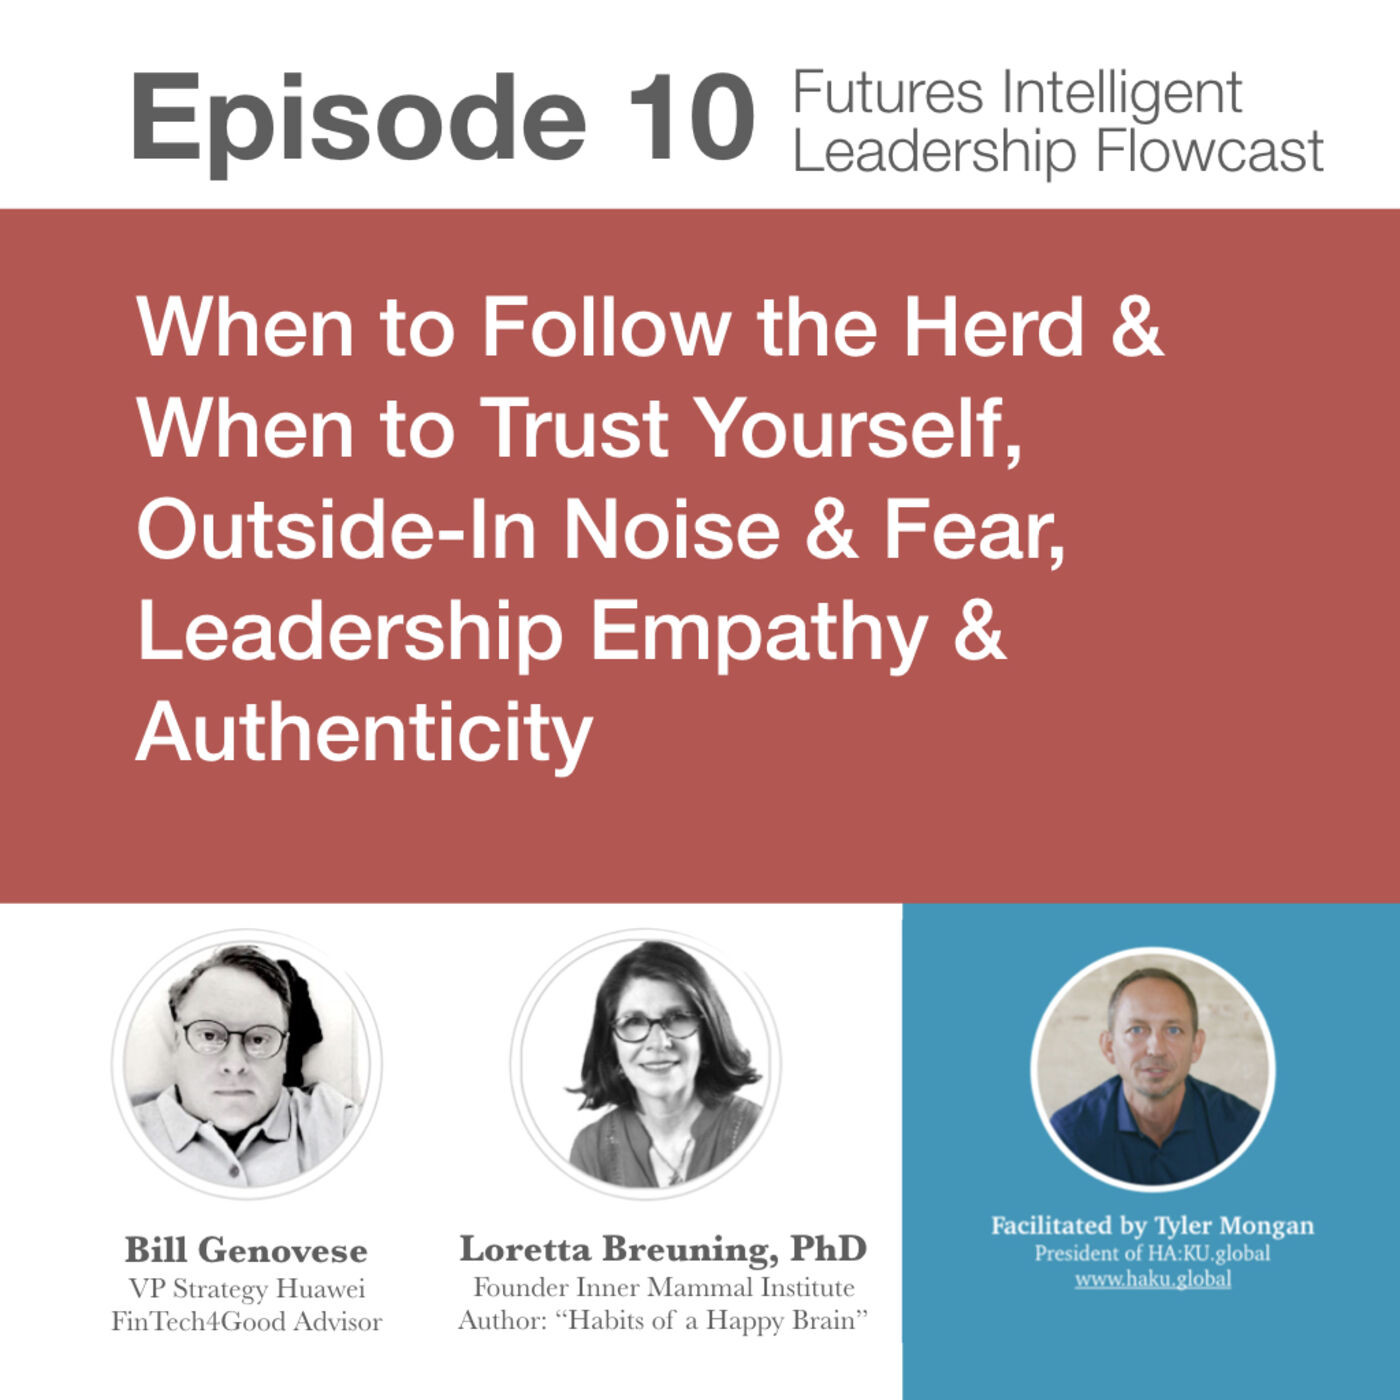 Episode 10: When to Follow the Herd & When to Trust Yourself, Outside-In Noise & Fear, Leadership Empathy & Authenticity With Bill Genovese & Loretta Breuning